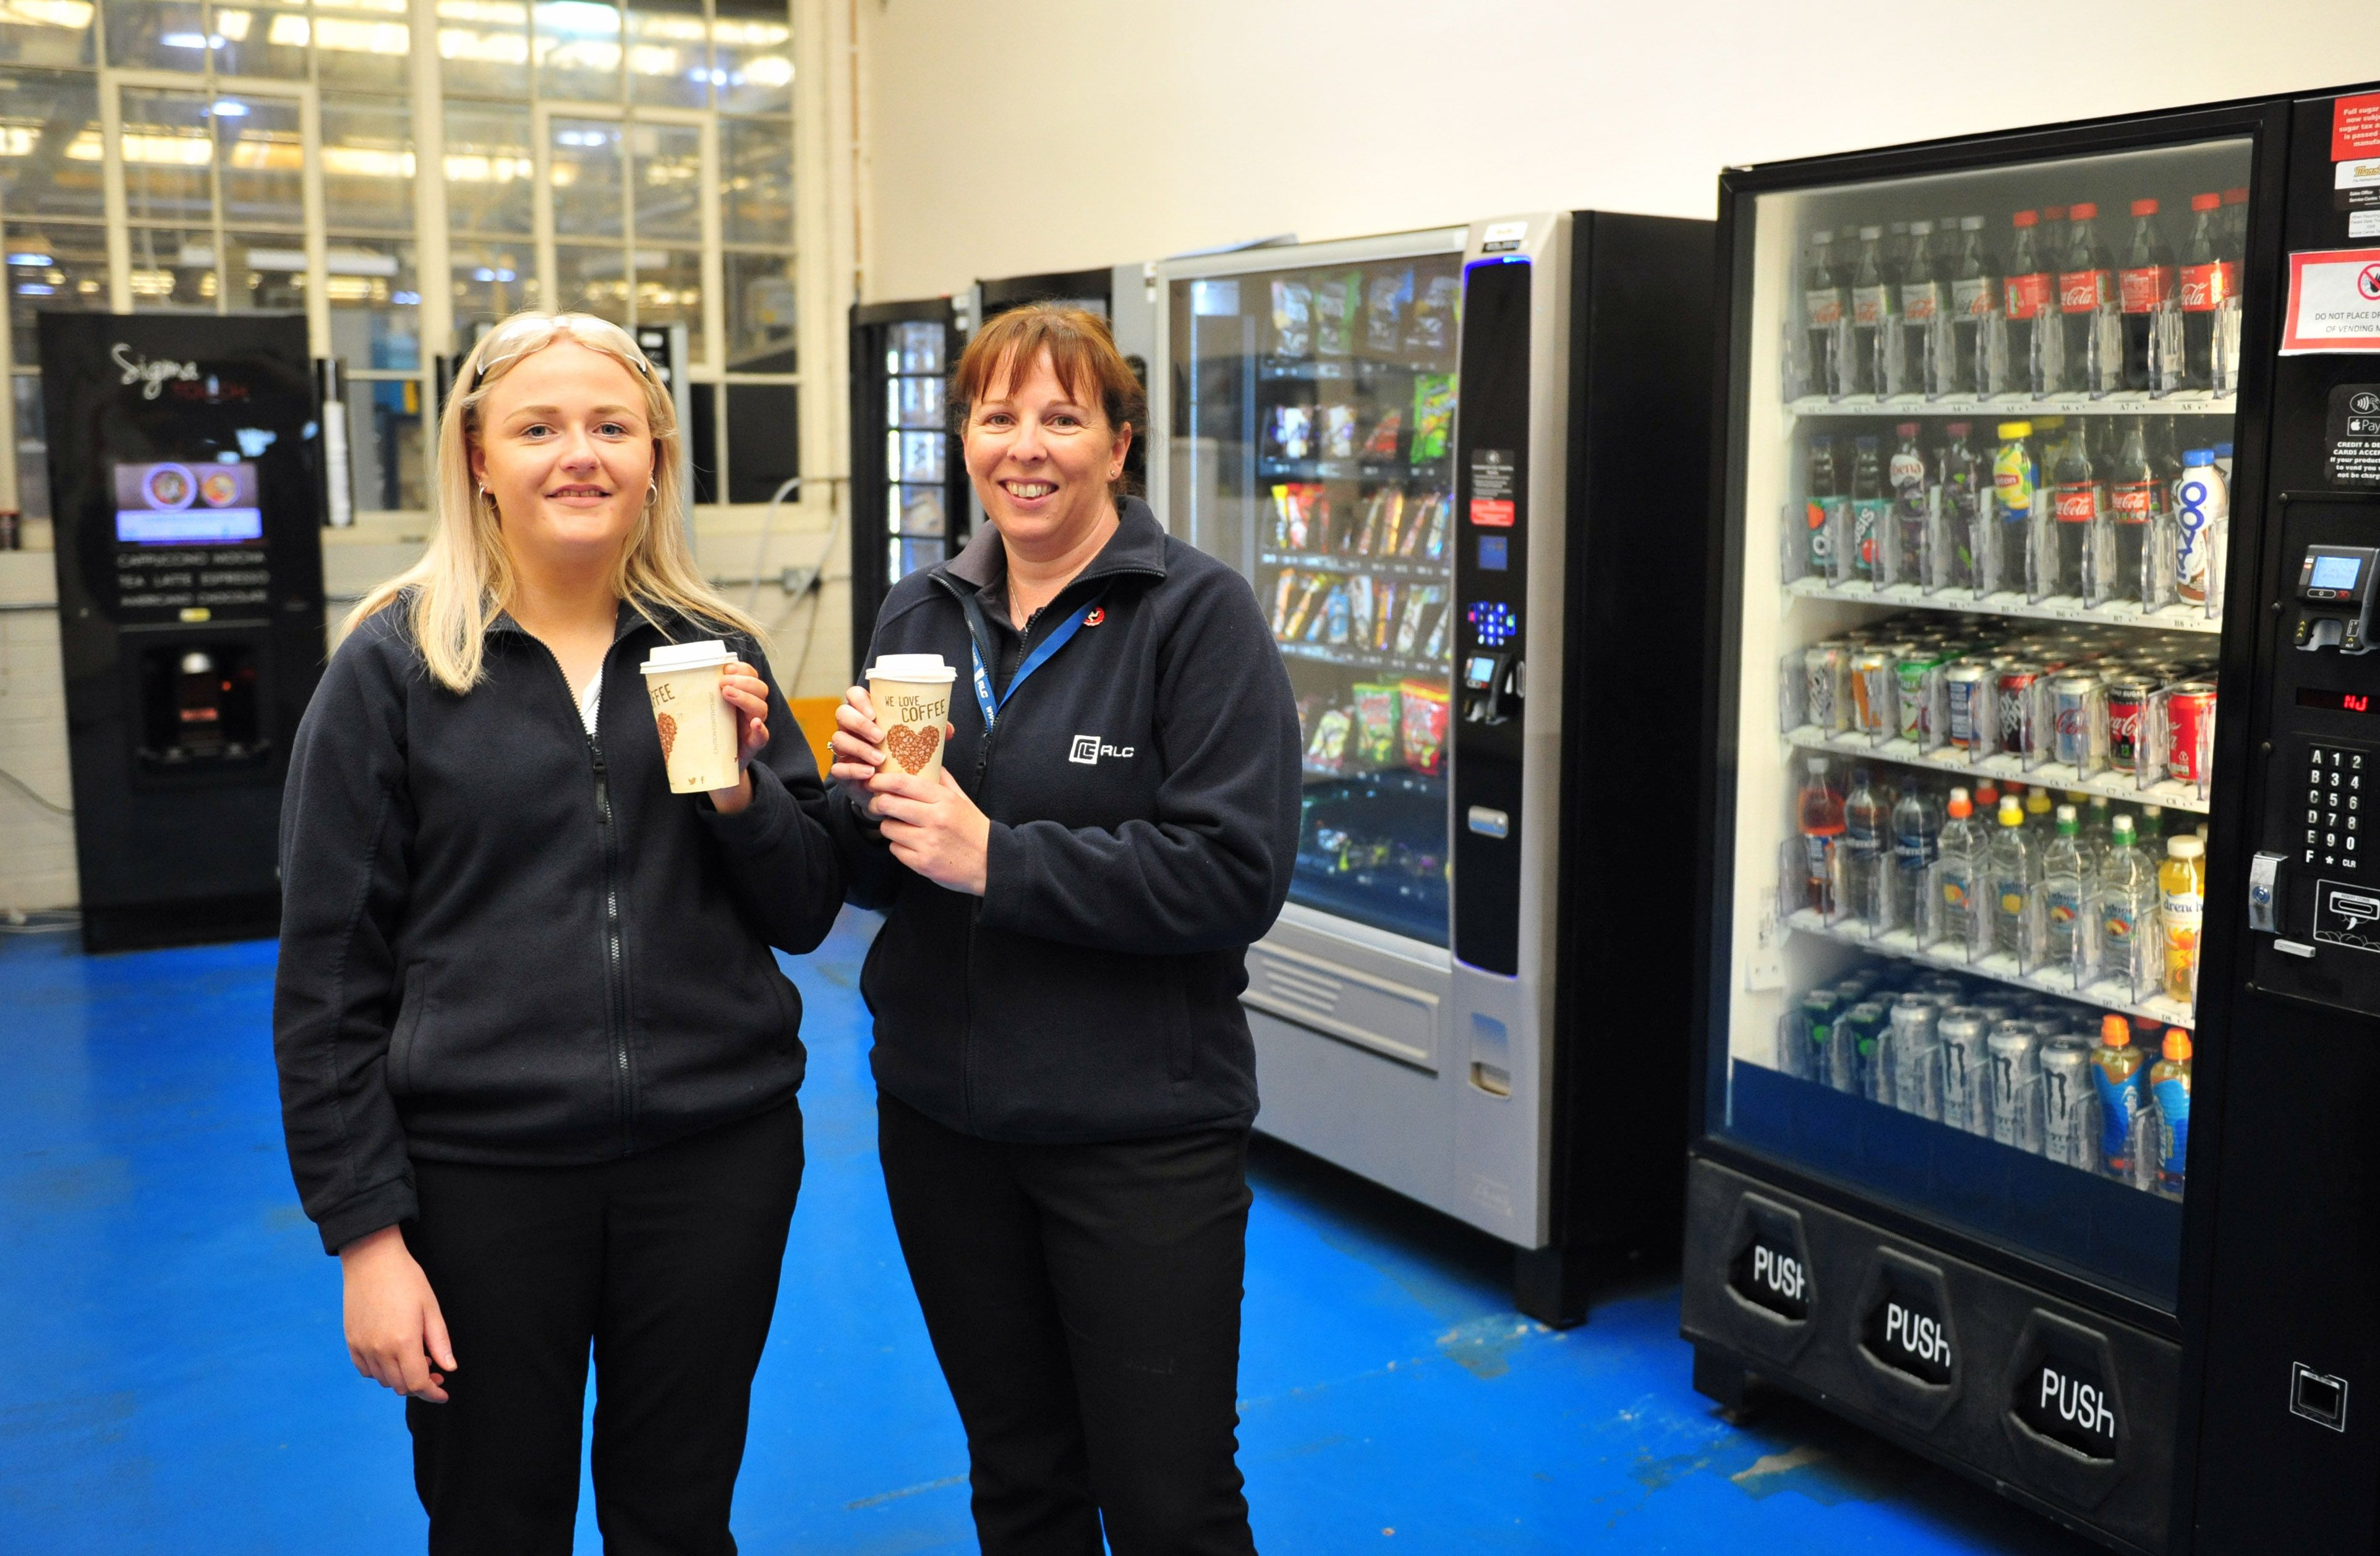 At Ronaldsway Aircraft Company Ltd are (left to right) Chloe Allcote, Receptionist, and Sam Dolby, HR Manager